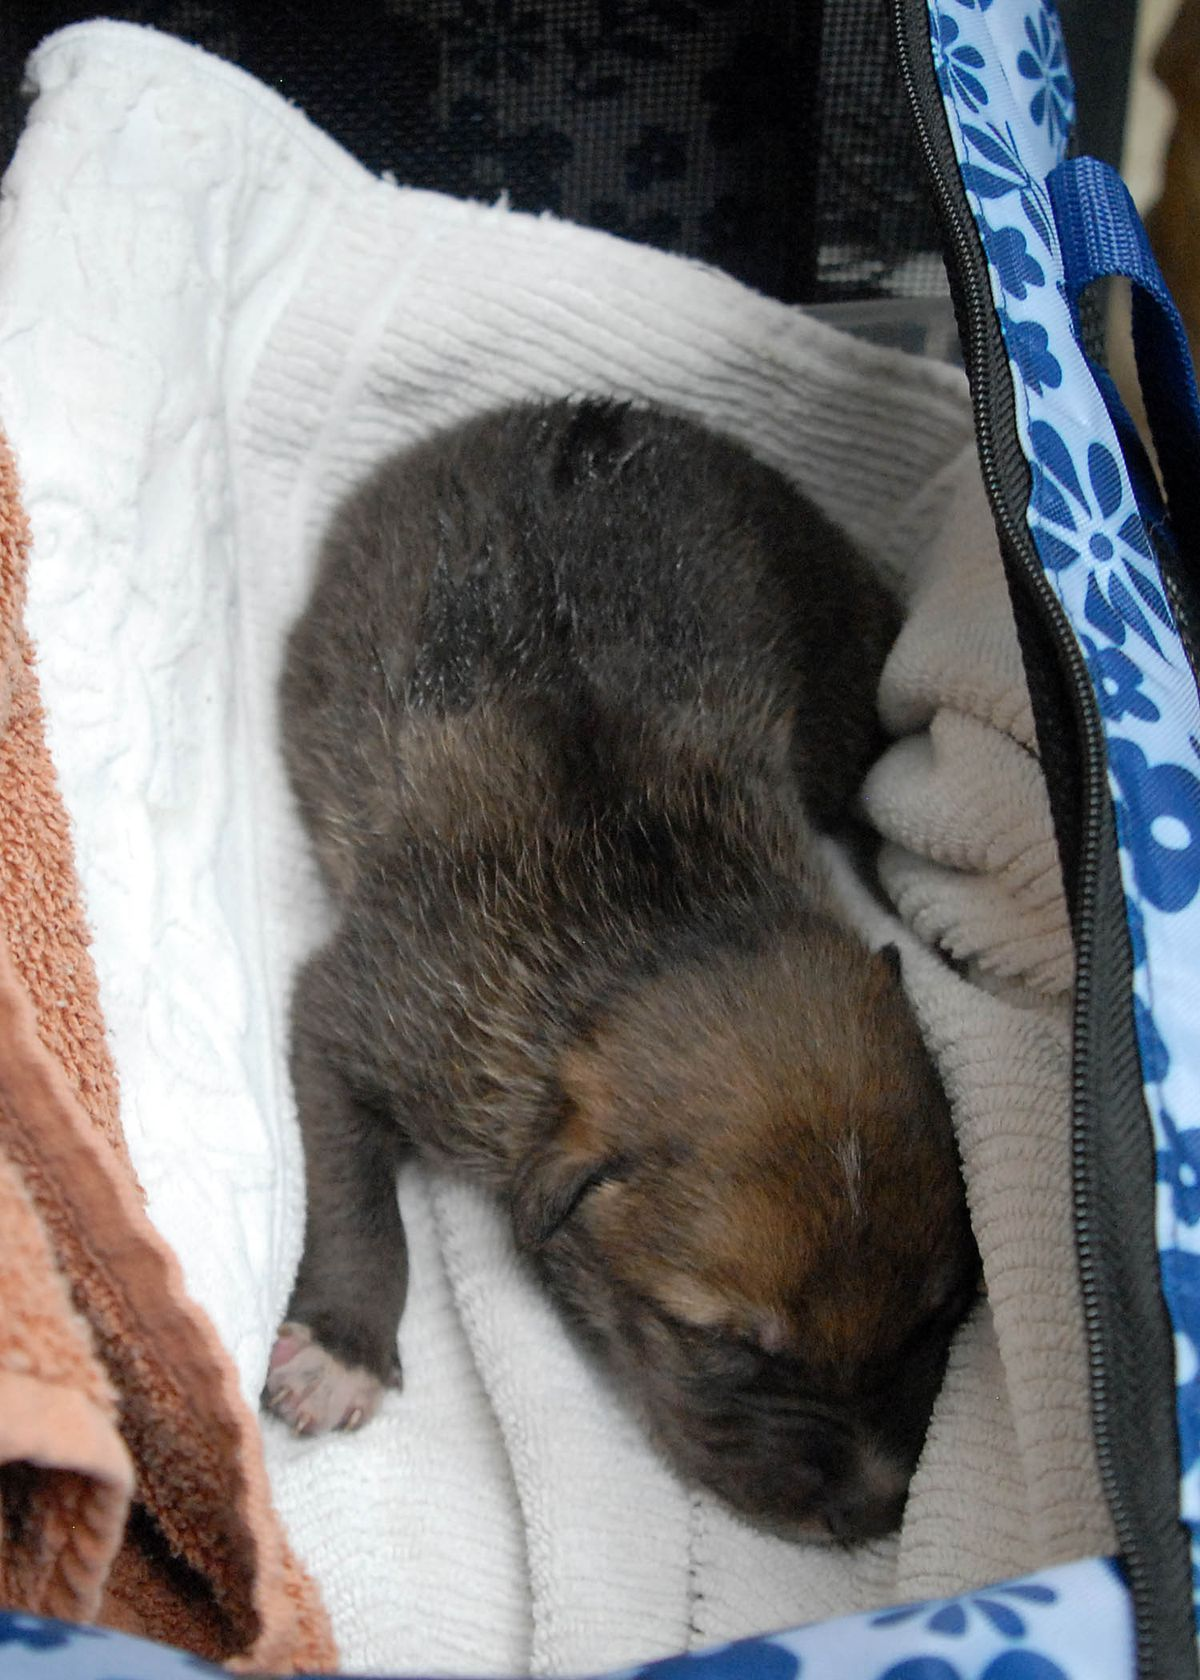 Blaze, a Mexican gray wolf puppy born at Brookfield Zoo, prior to his trip across country to be placed with the Arizona-based Elk Horn Pack of wild wolves as part of the Mexican Gray Wolf Recovery Program. | Chicago Zoological Society